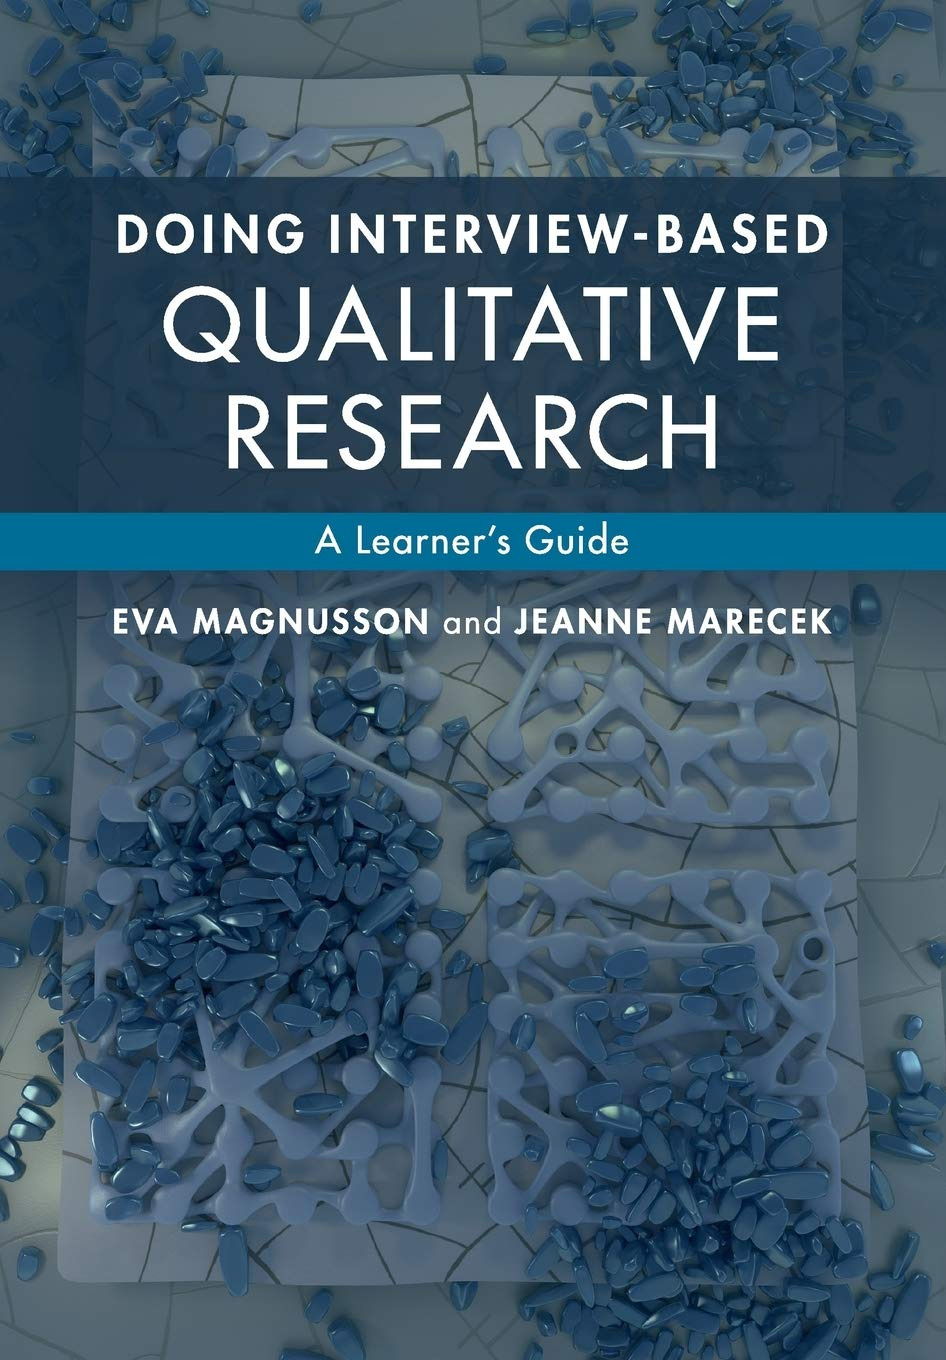 Image OfDoing Interviewbased Qualitative Research